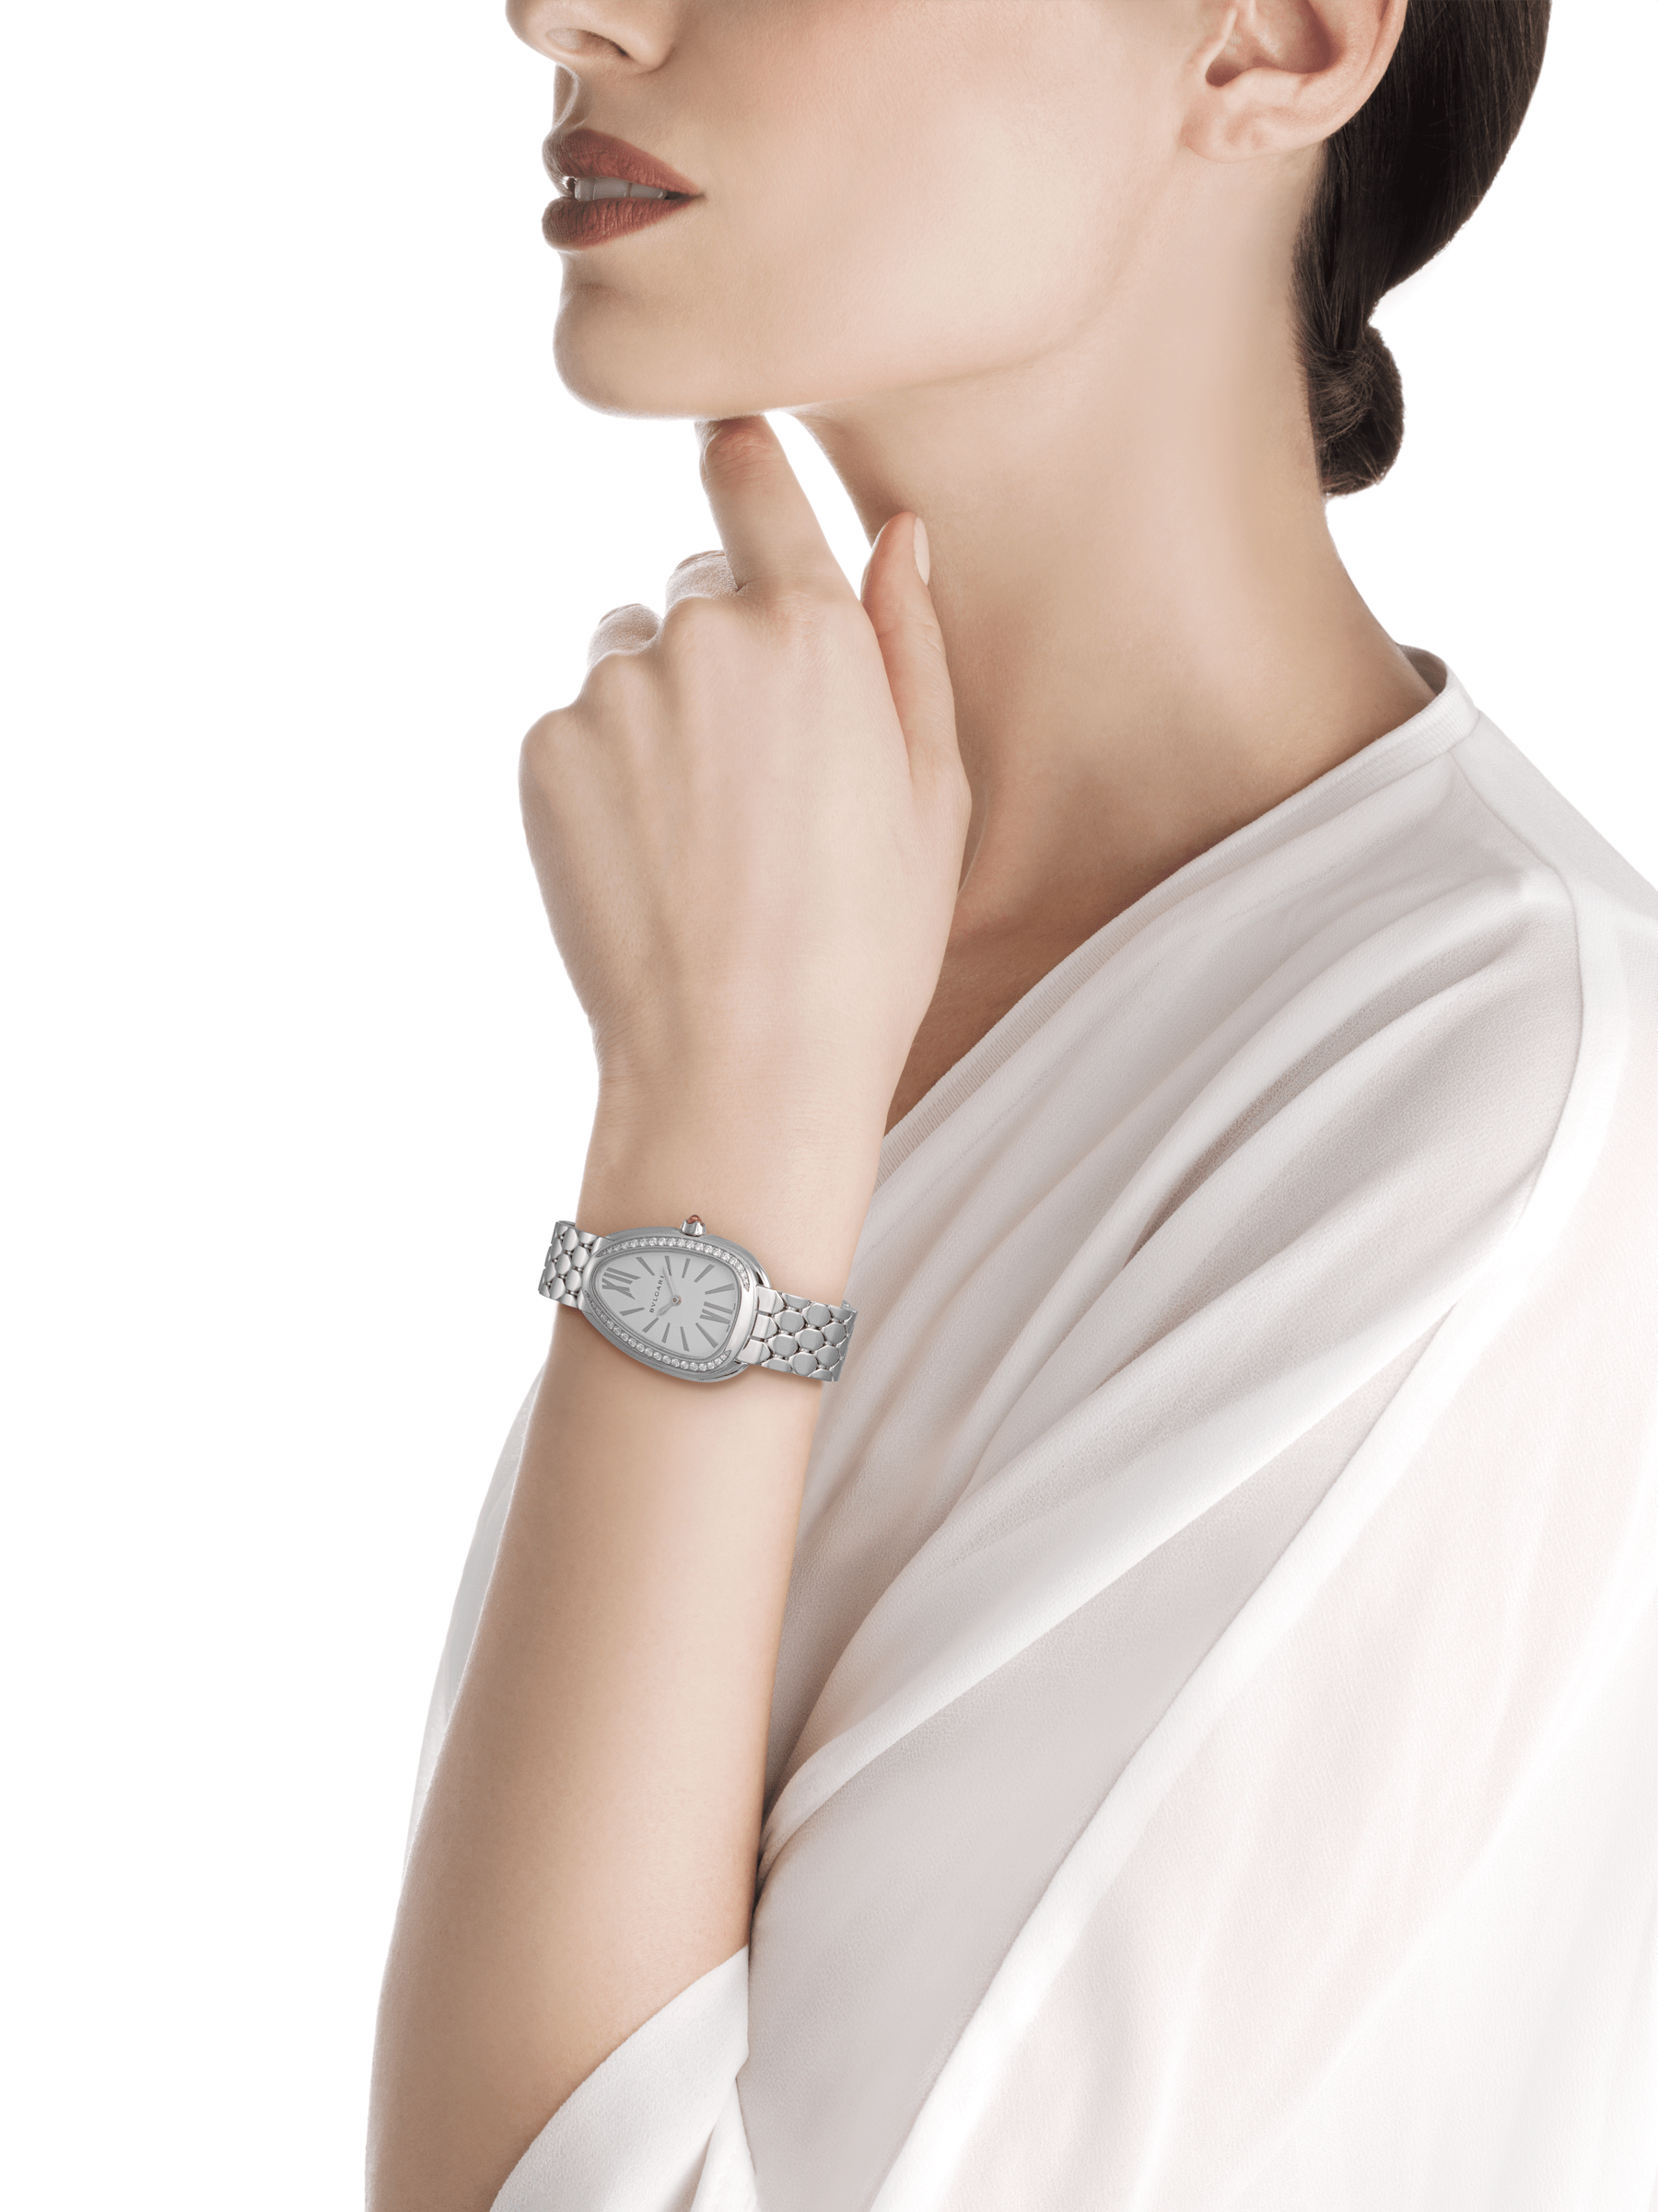 Serpenti Seduttori watch in stainless steel case and bracelet, stainless steel bezel set with diamonds and white silver opaline dial 103361 image 4